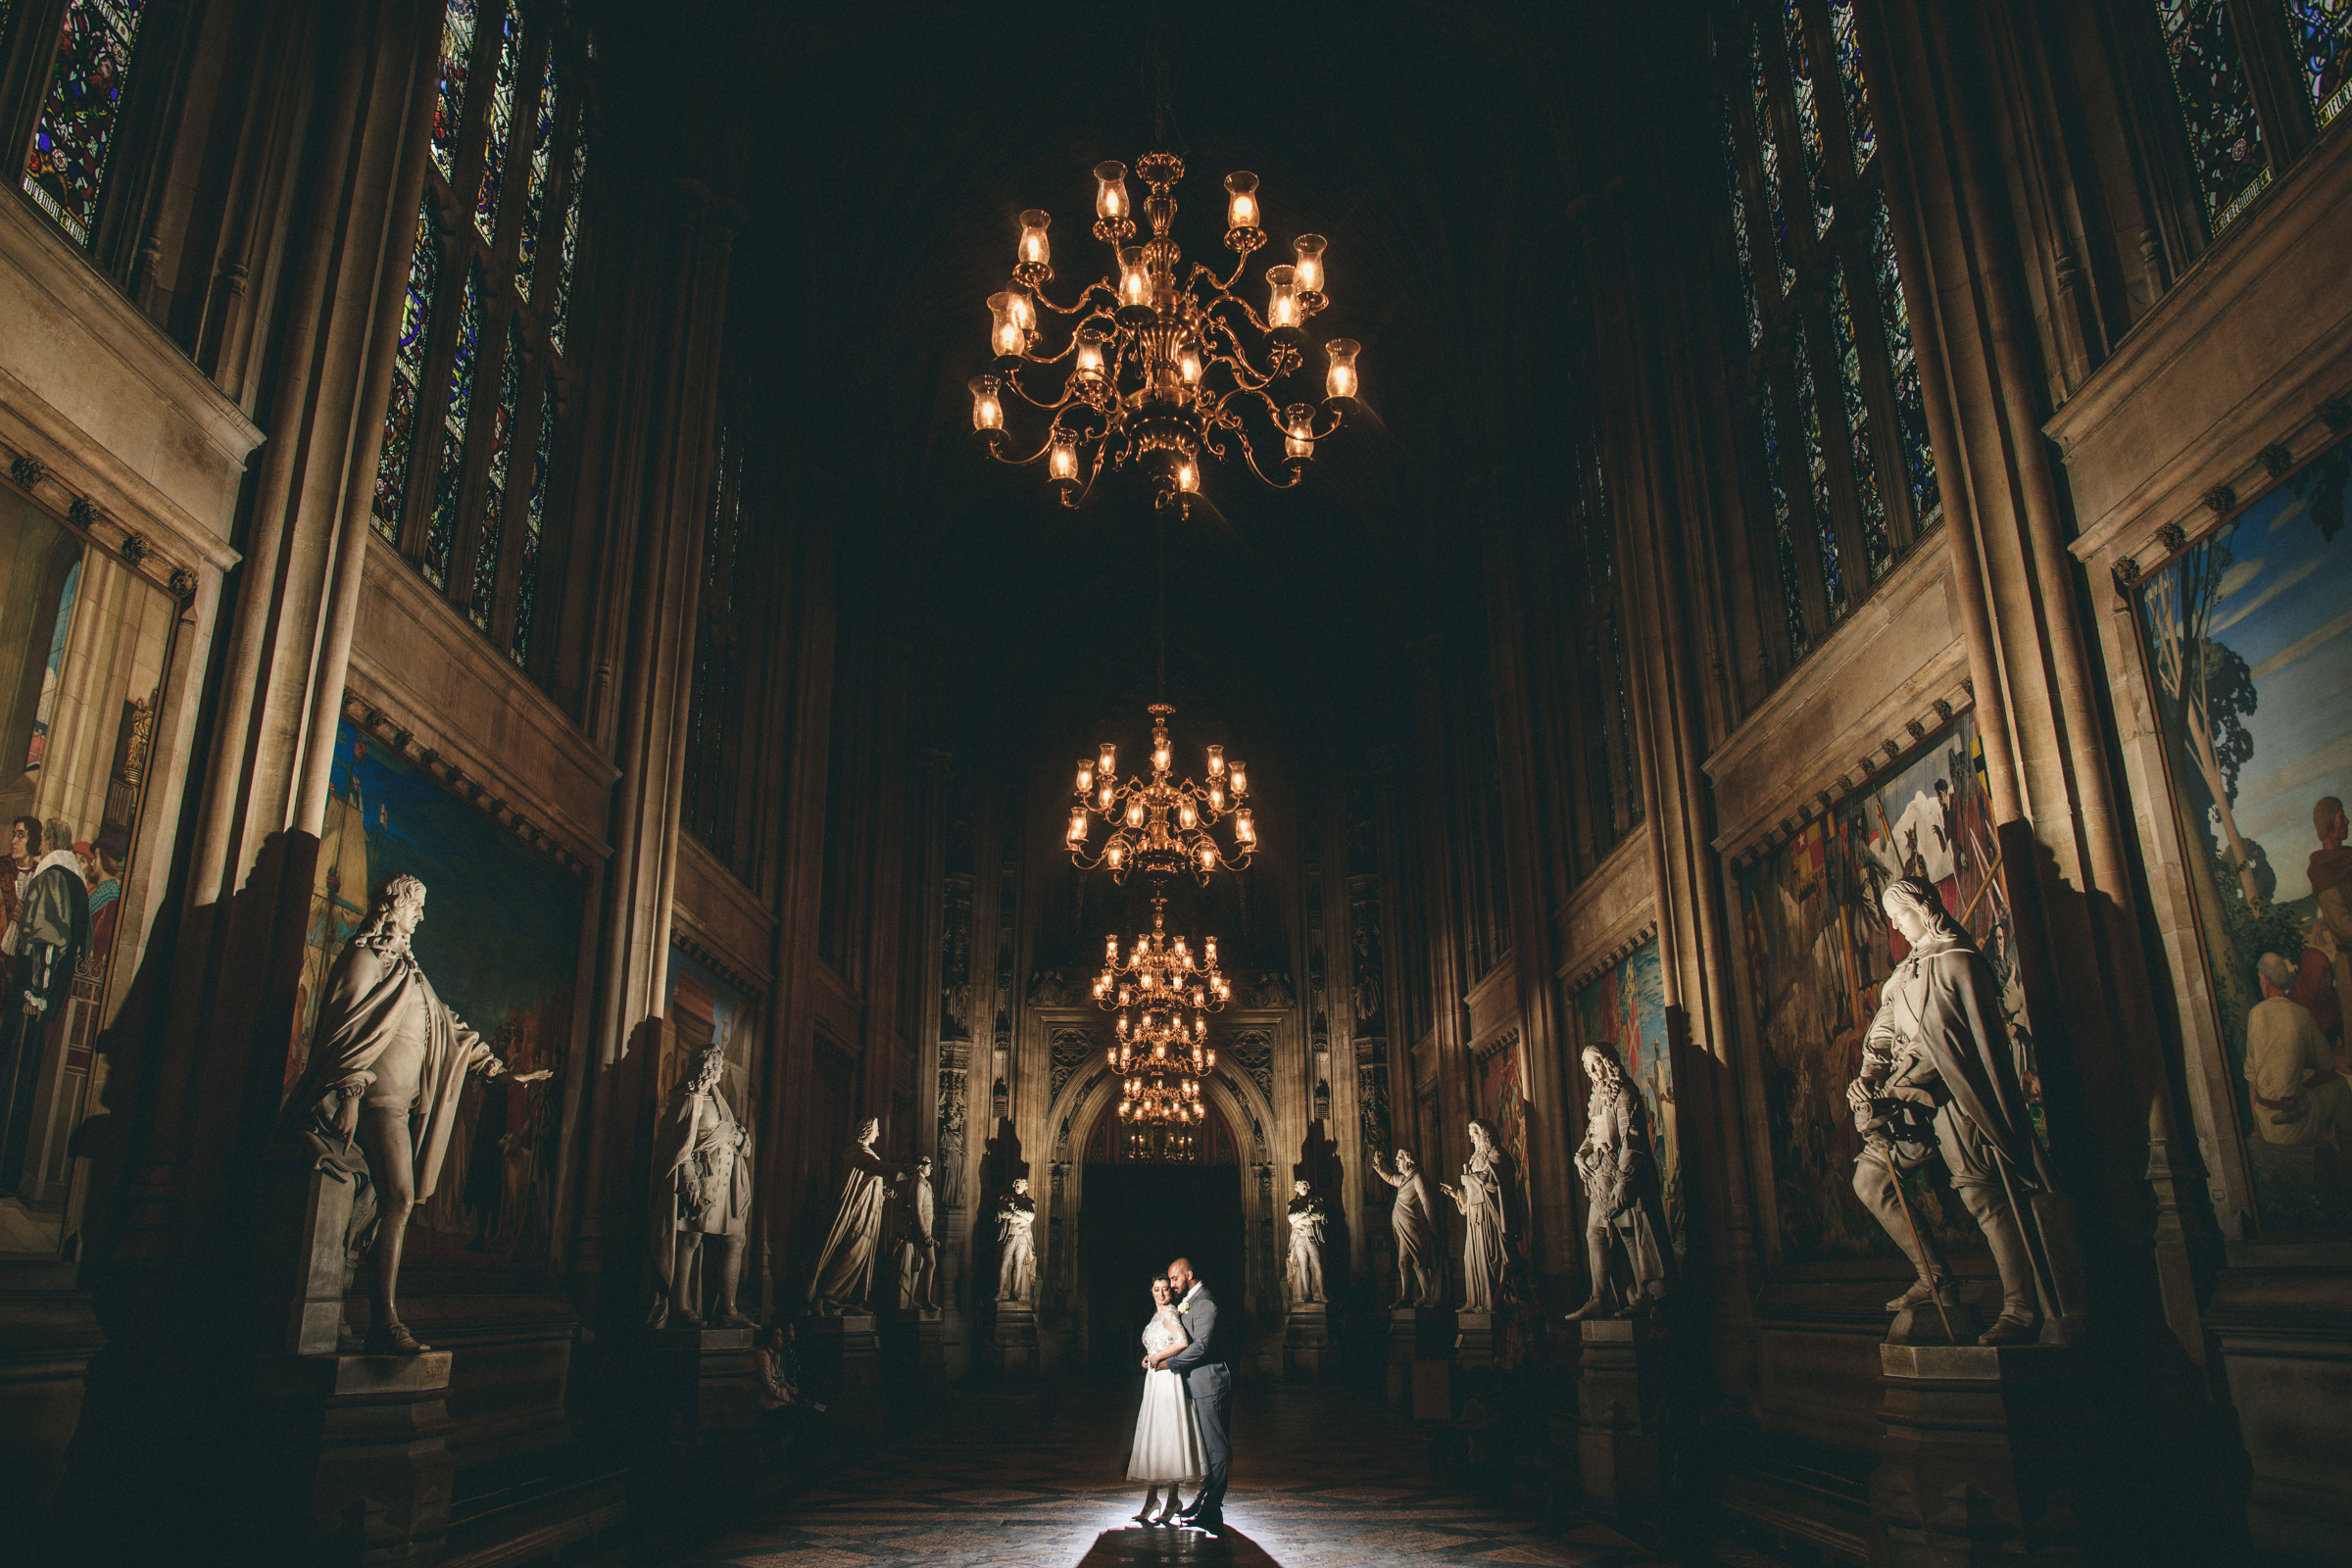 low-light-couple-portrait-in-museum-setting-with-sculptures-and-chandeliers-miki-studios